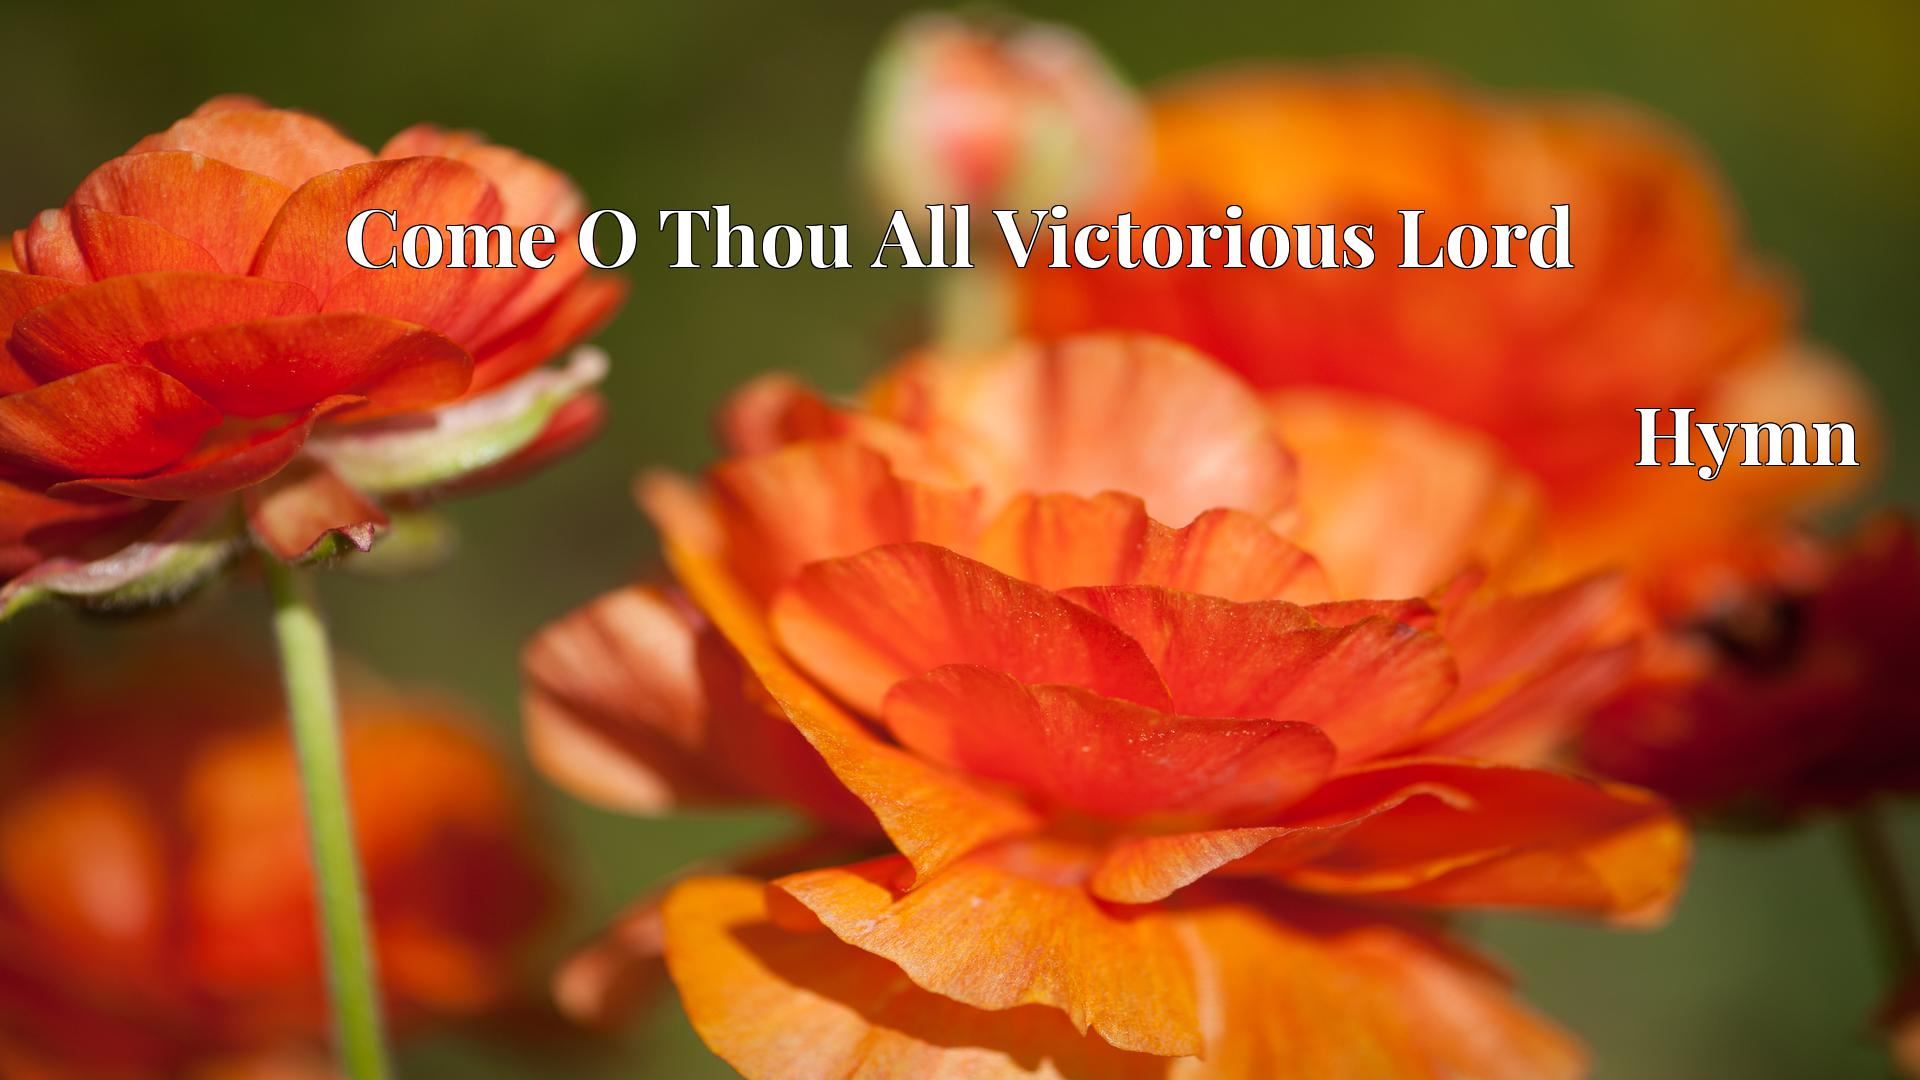 Come O Thou All Victorious Lord Hymn Lyric